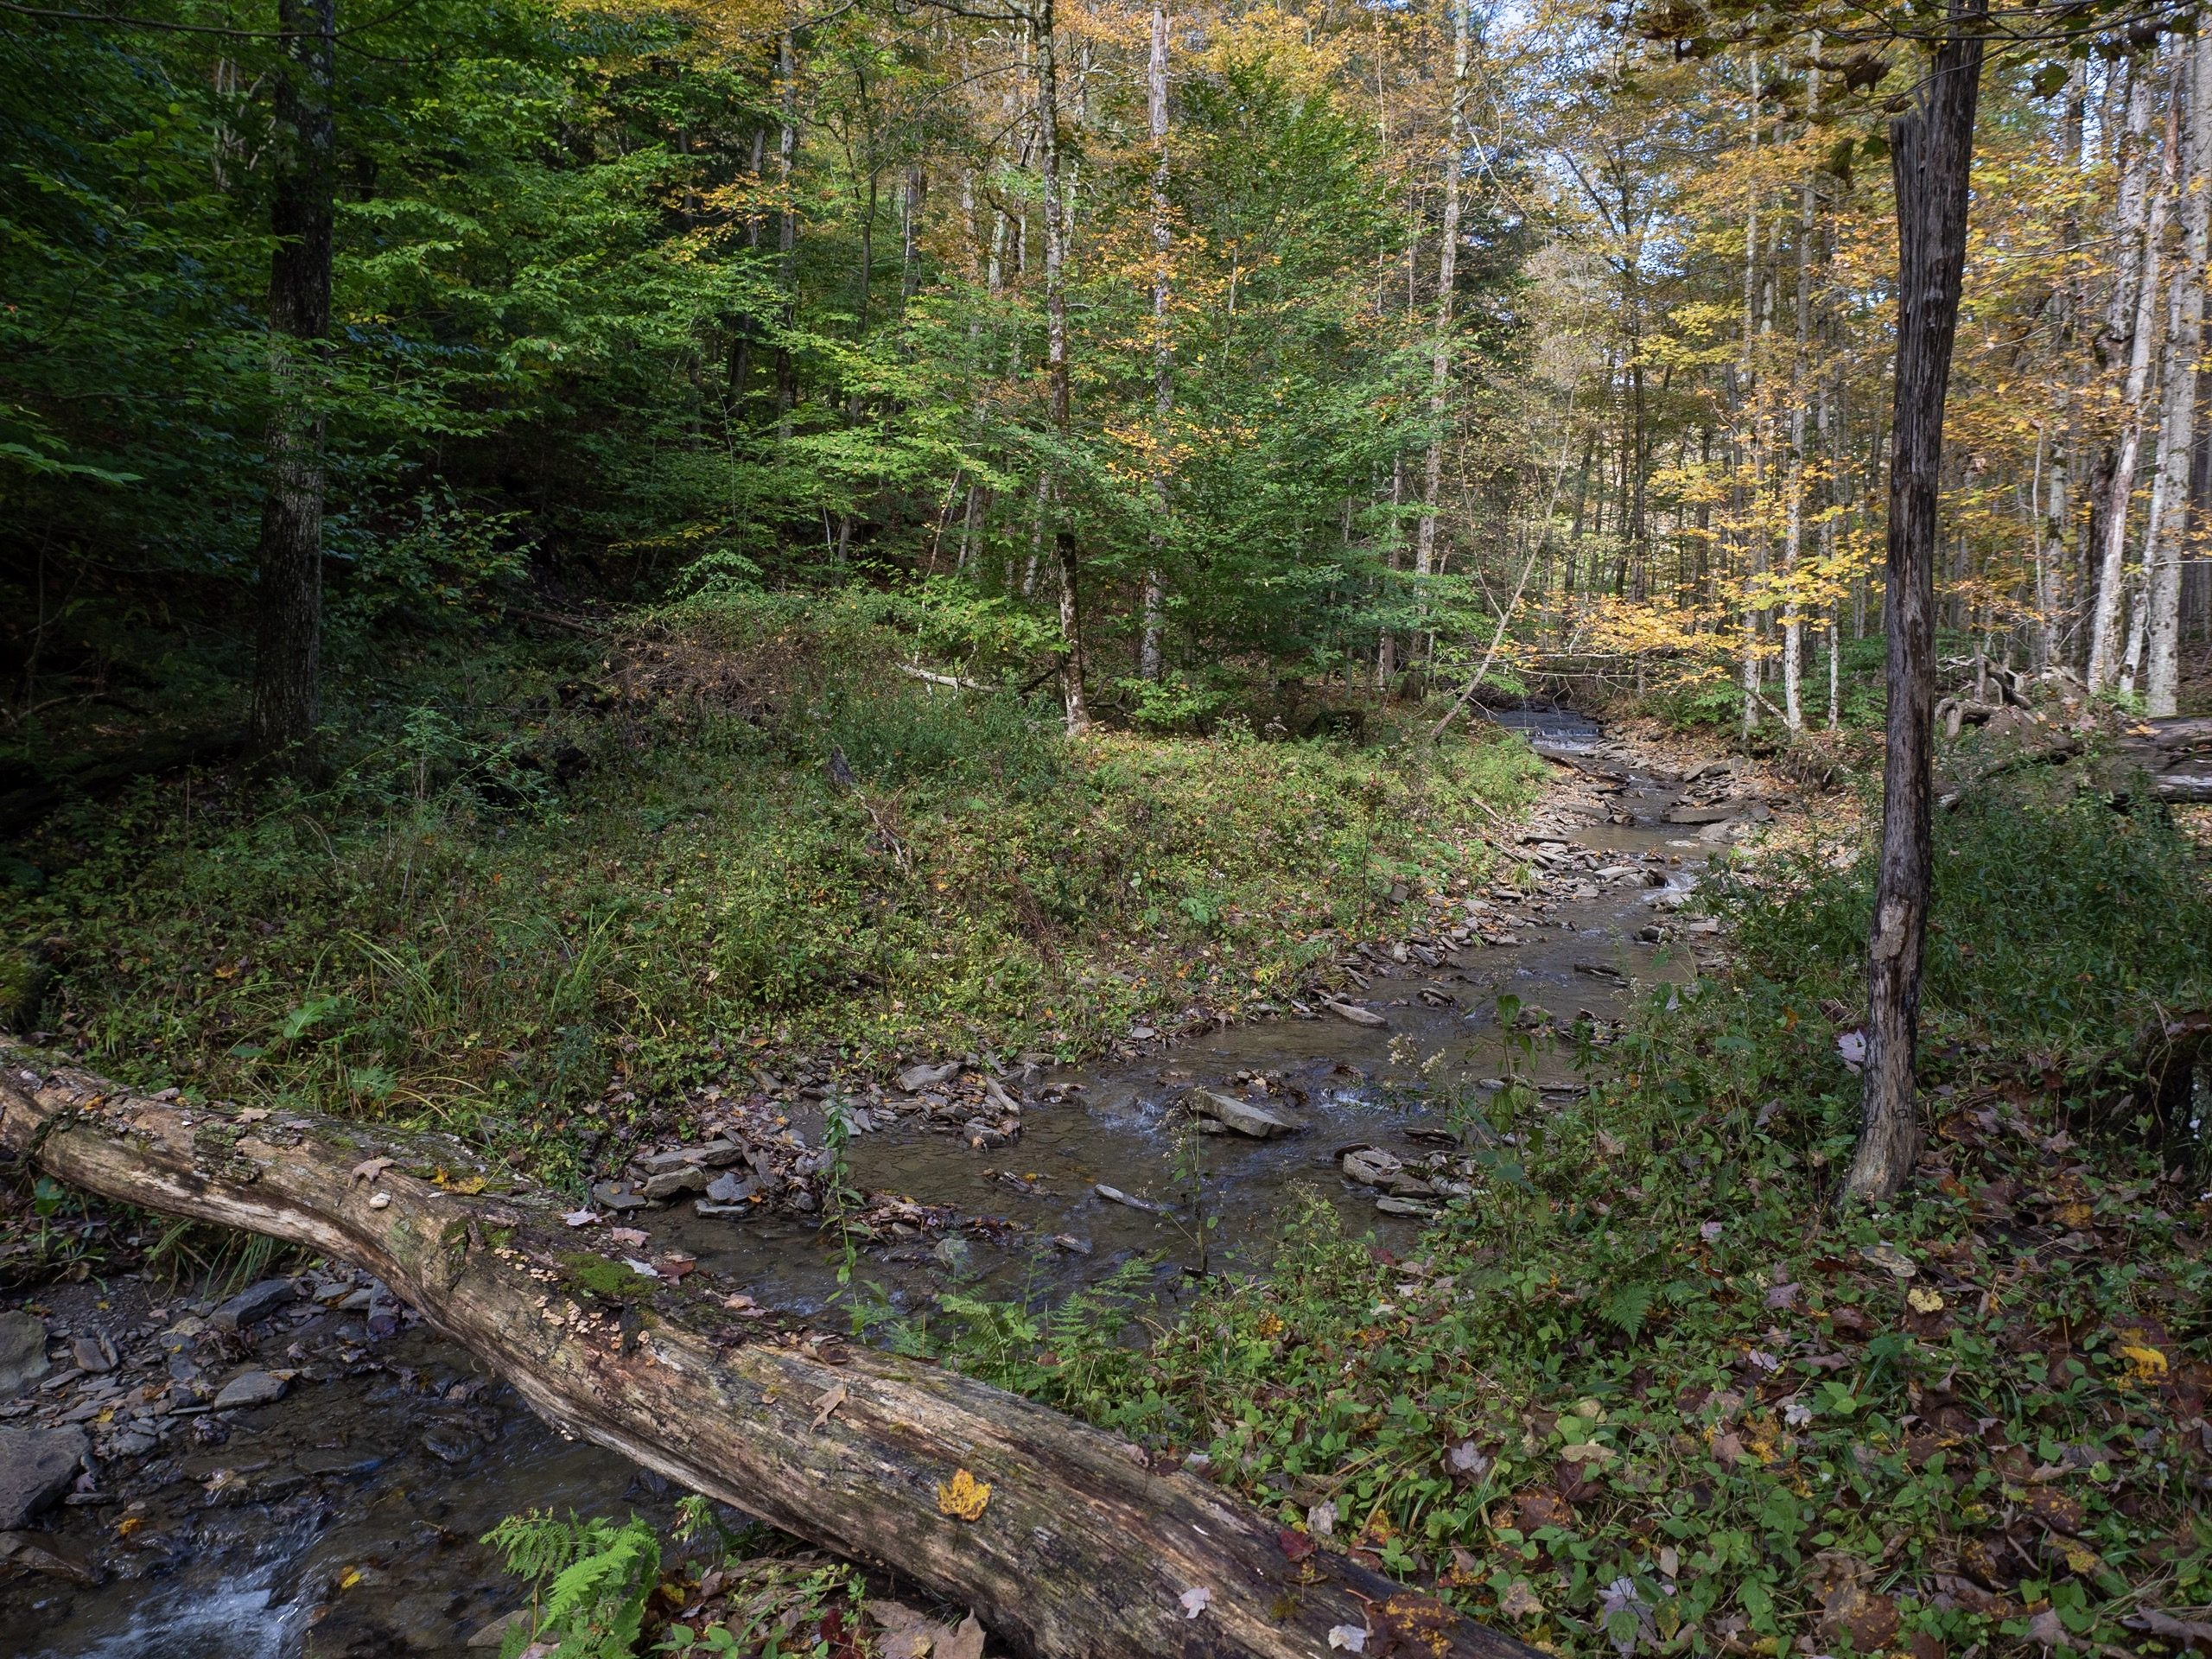 Conservation Easement Protects 89 Forested Acres in Ithaca's Emerald Necklace